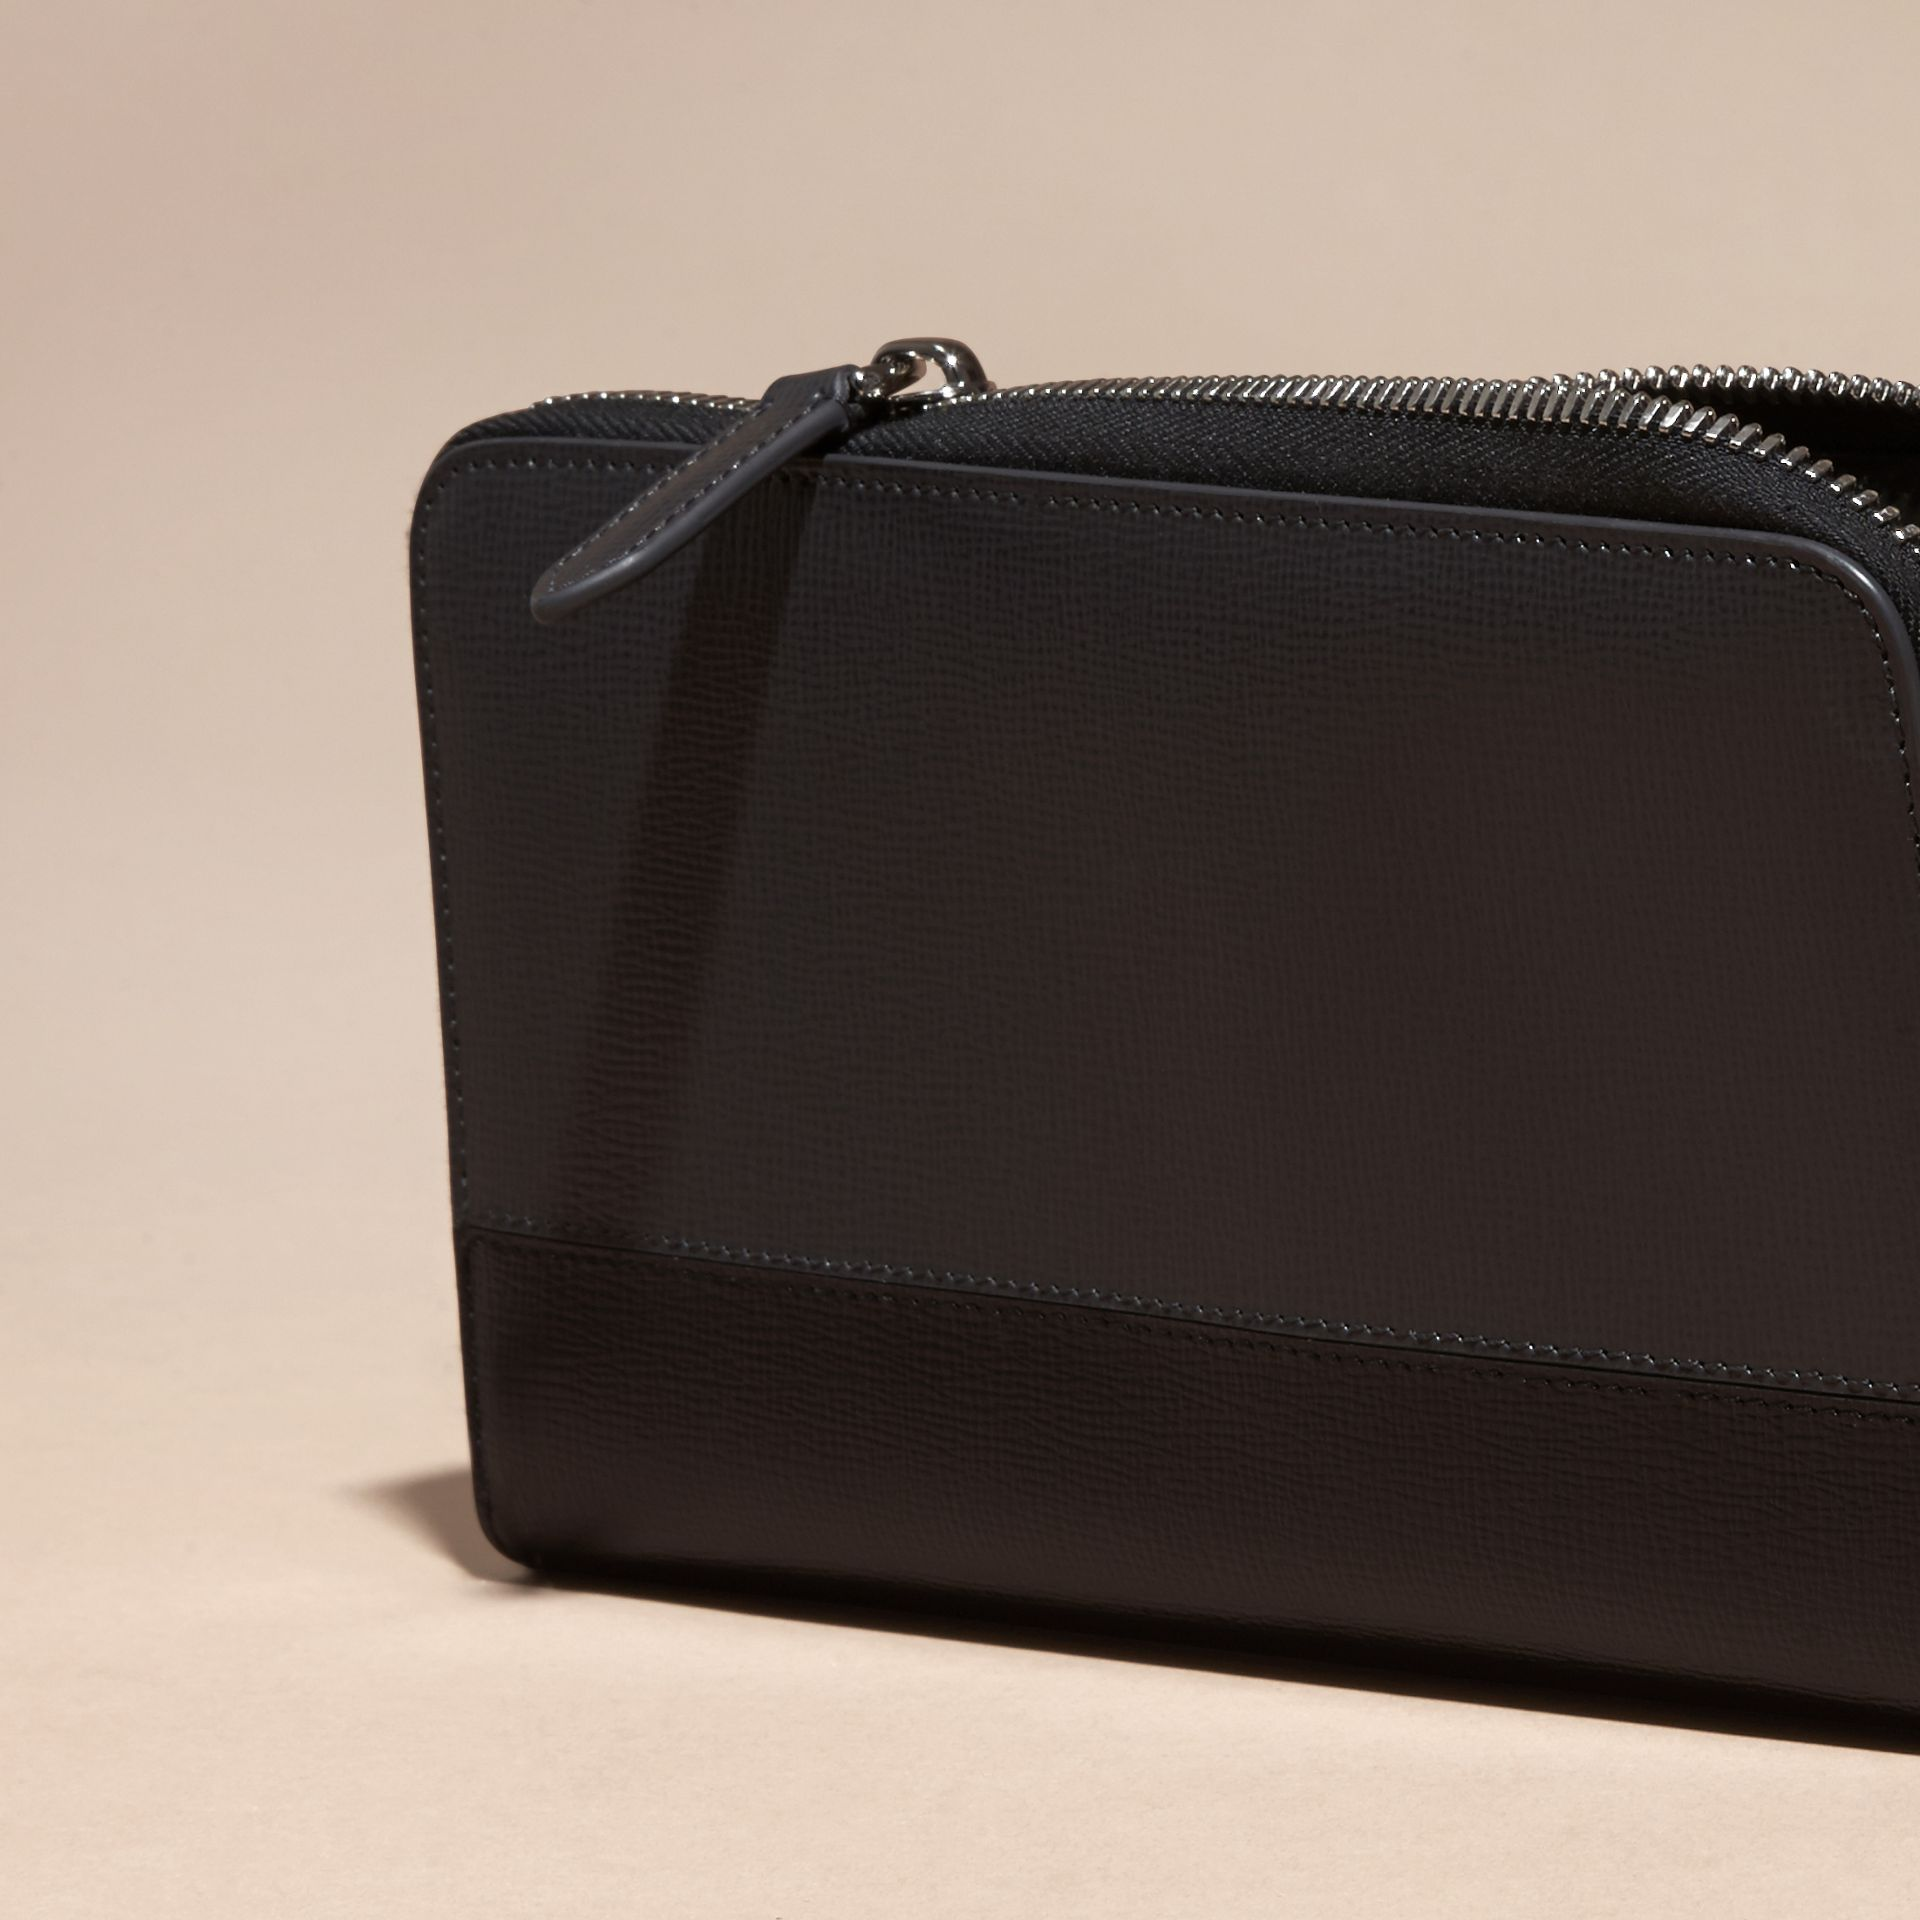 Charcoal/black Colour Block London Leather Ziparound Wallet Charcoal/black - gallery image 2